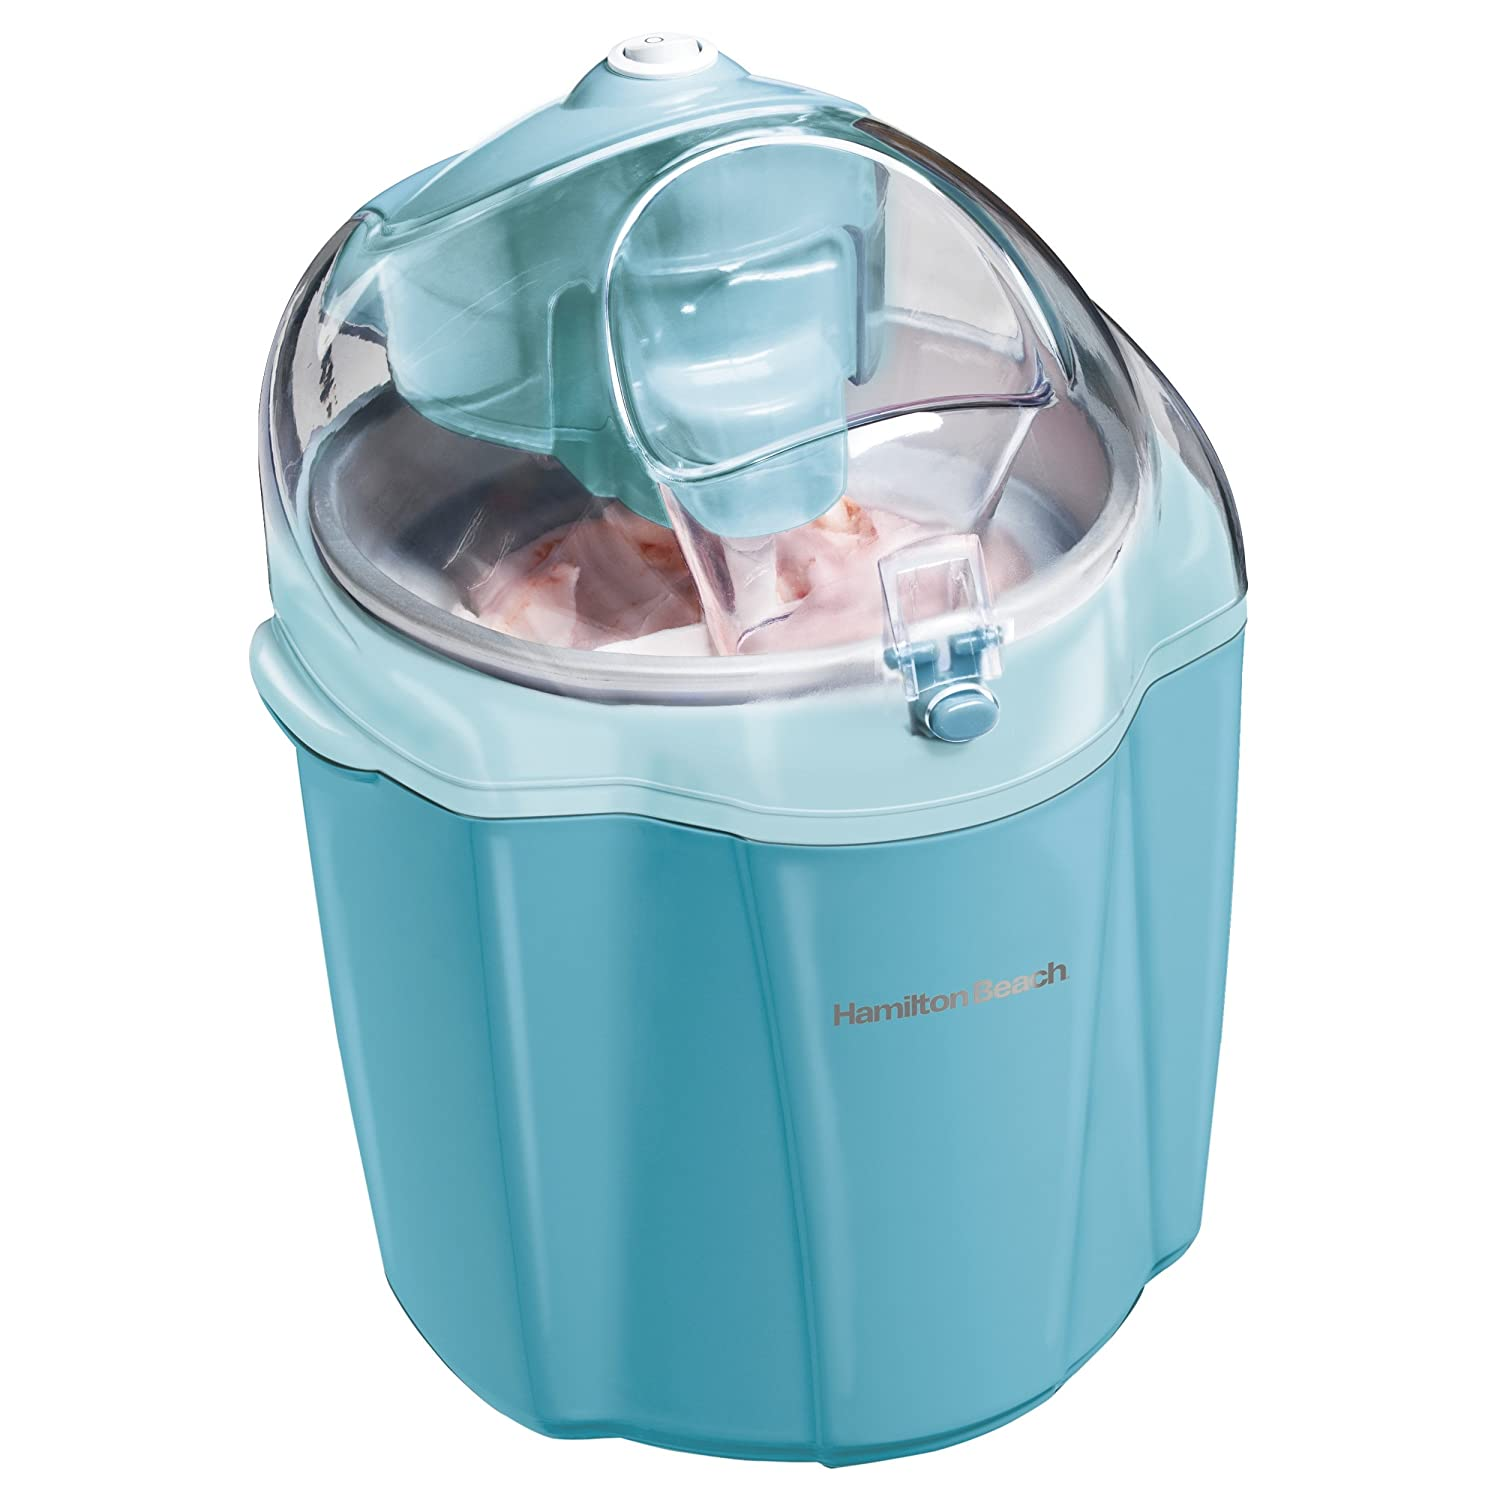 Hamilton Beach 68322 Ice Cream Maker, 1.5-Quart, Blue